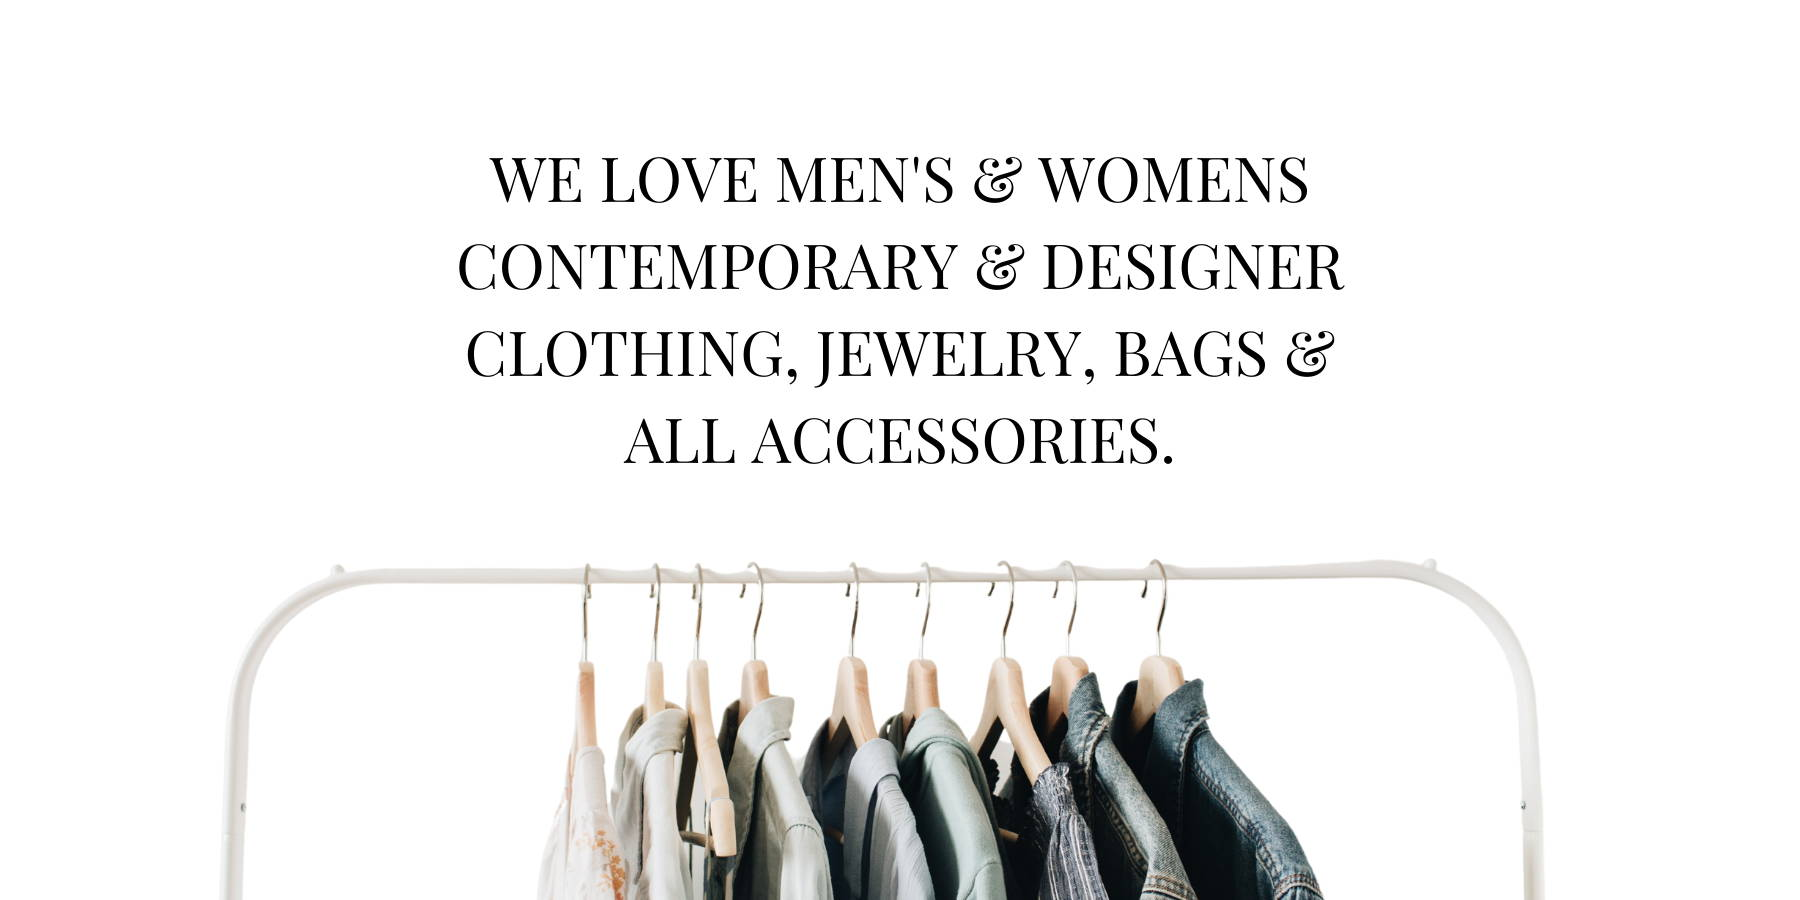 Consign, sell, or outright buy your women's and men's fashion, shoes, bags, jewelry, with Turnabout Luxury Resale